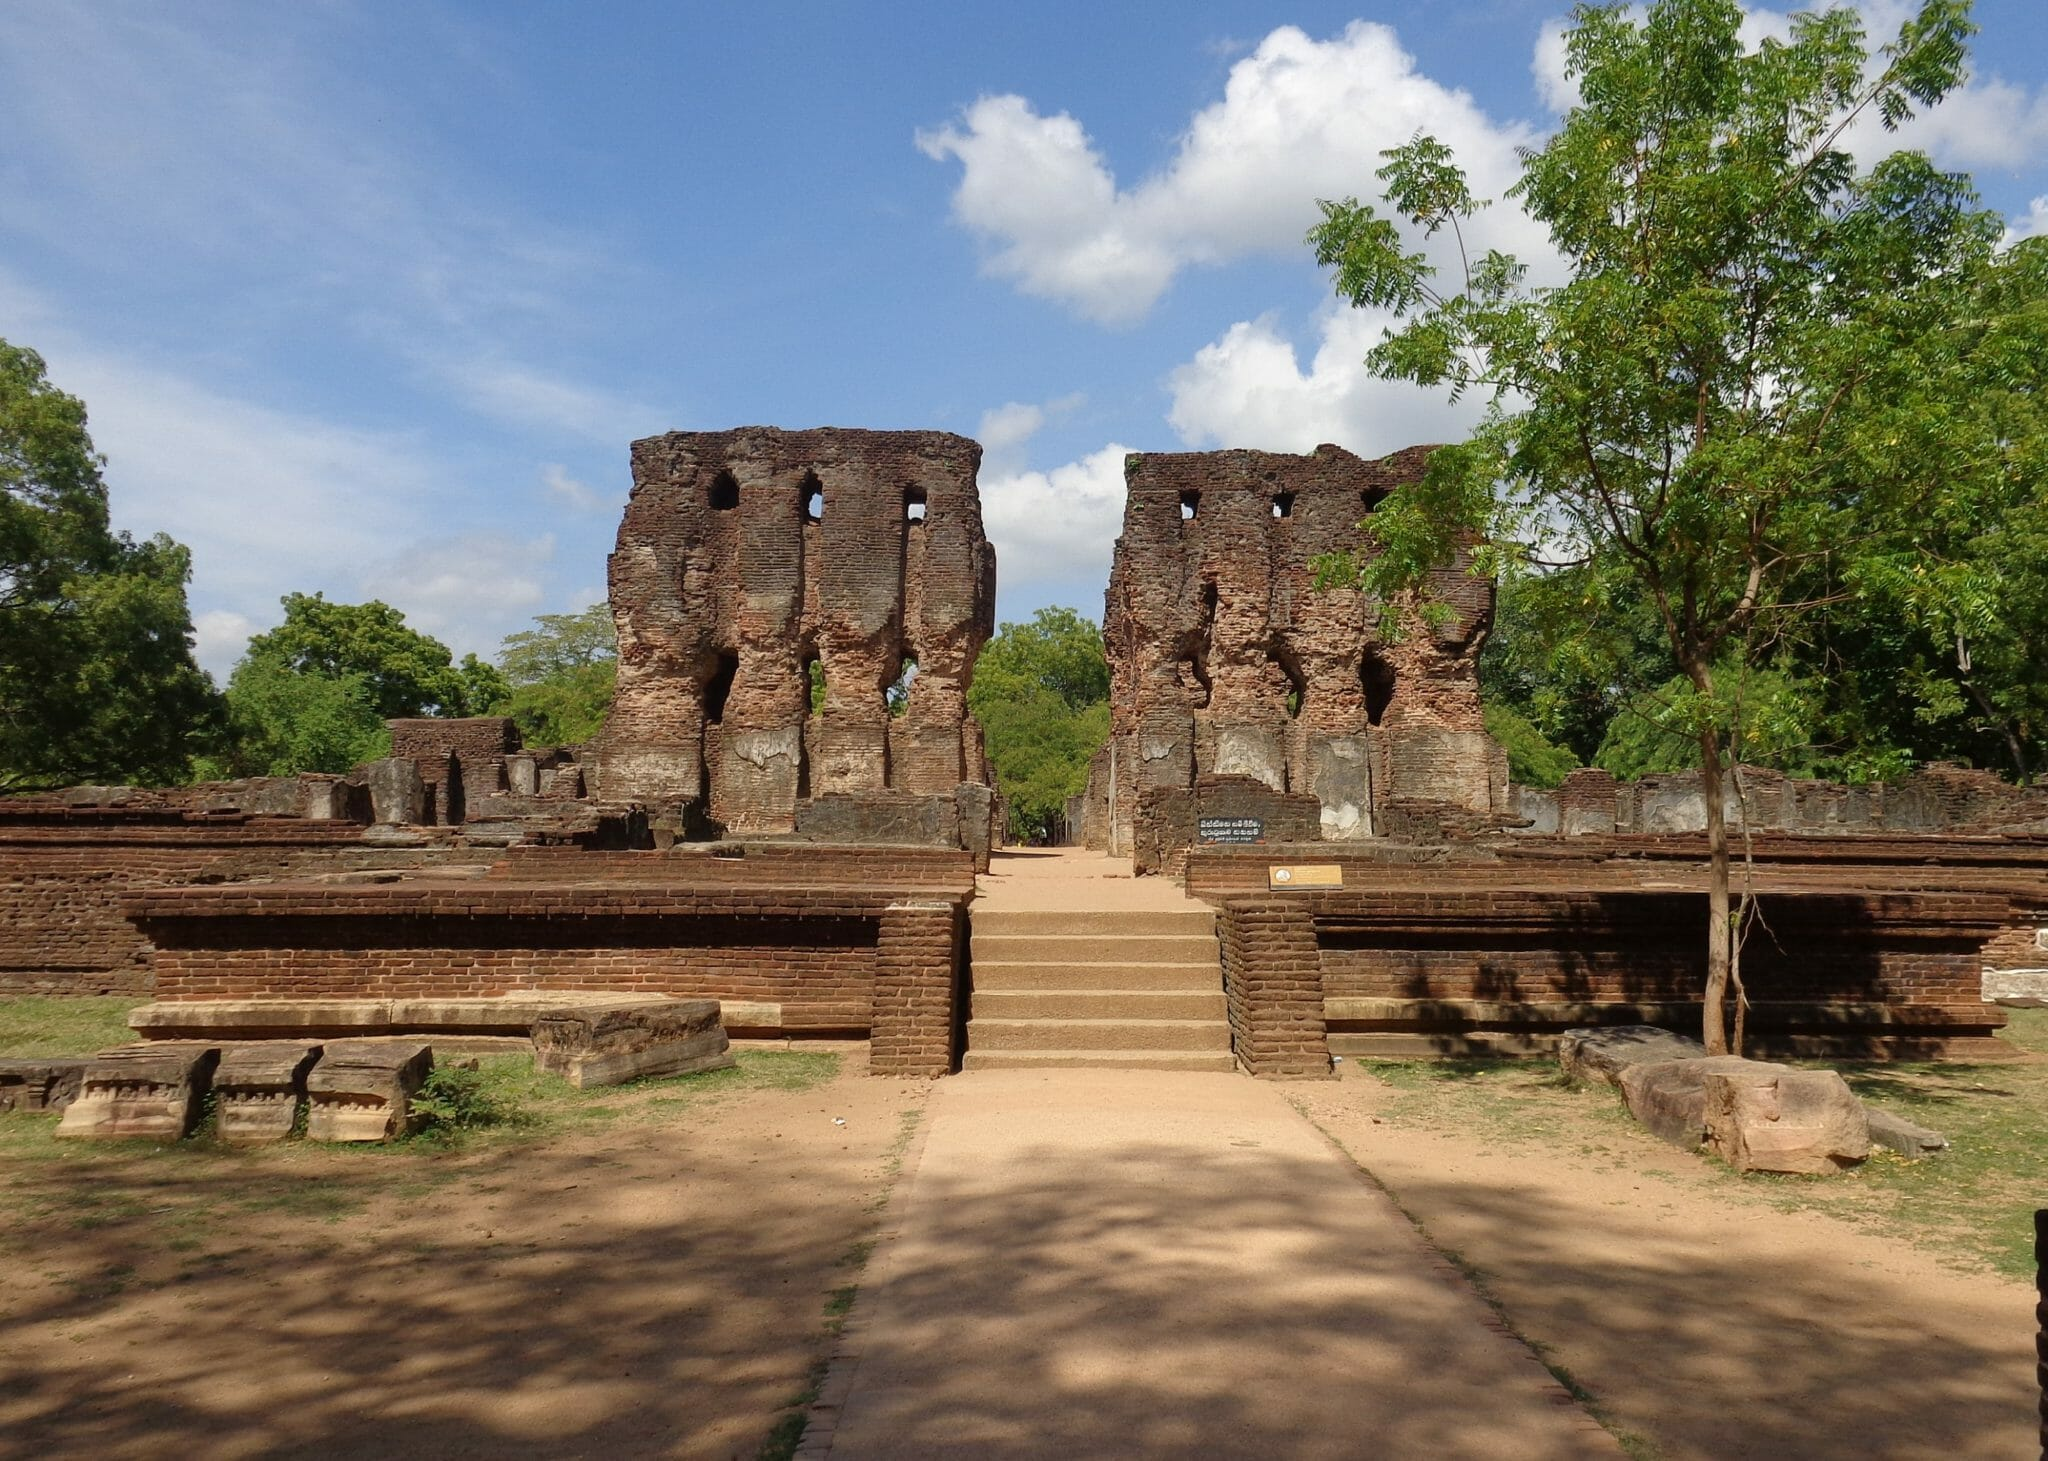 Palace of King Parakramabahu - Polonnaruwa